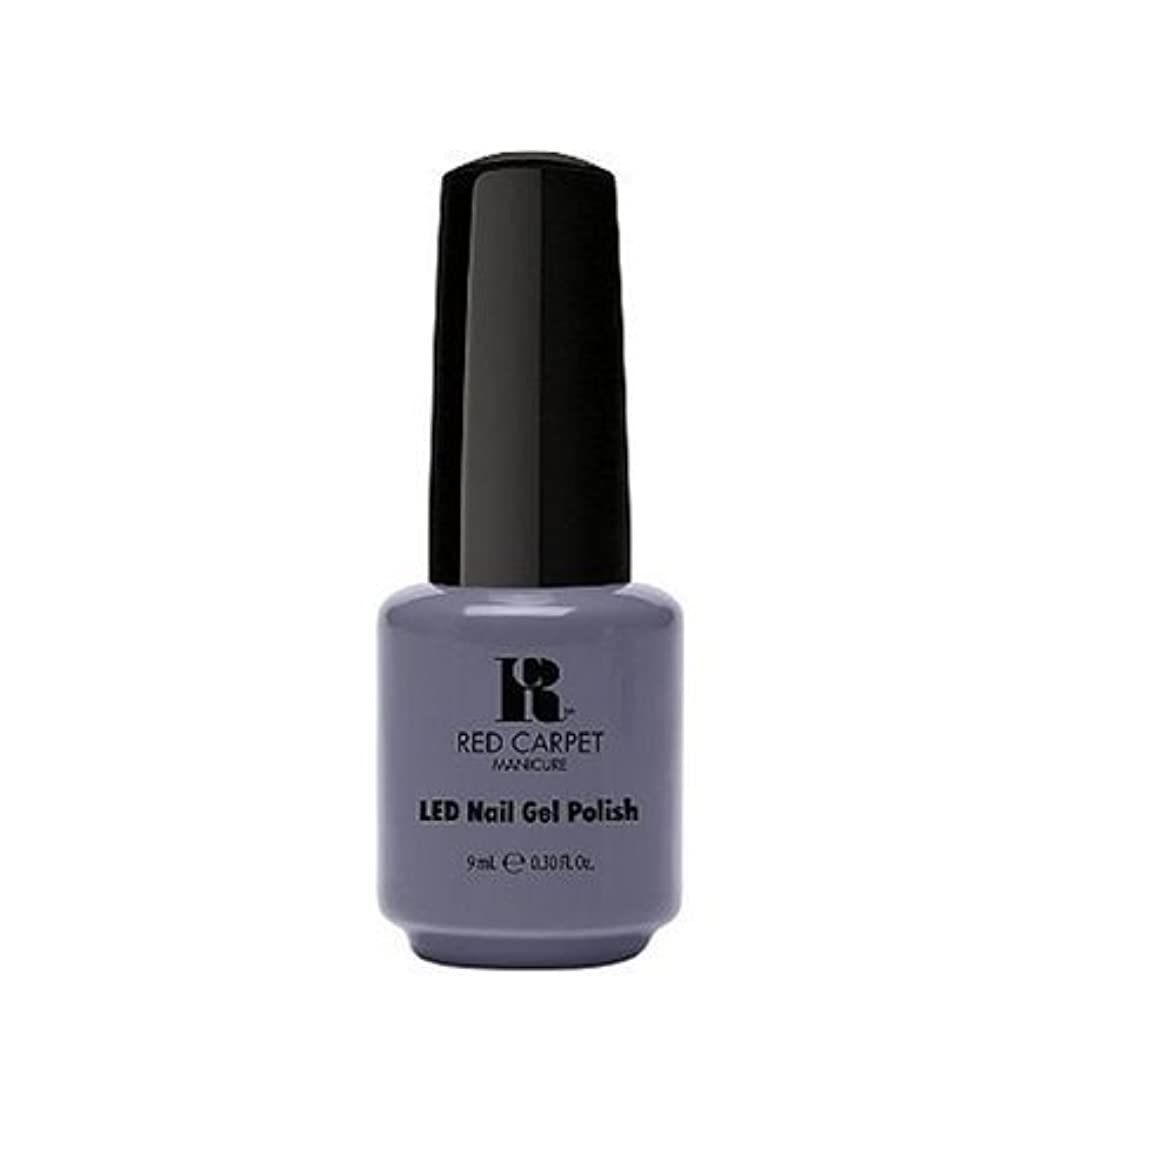 Red Carpet Manicure - LED Nail Gel Polish - Unscripted - 0.3oz / 9ml